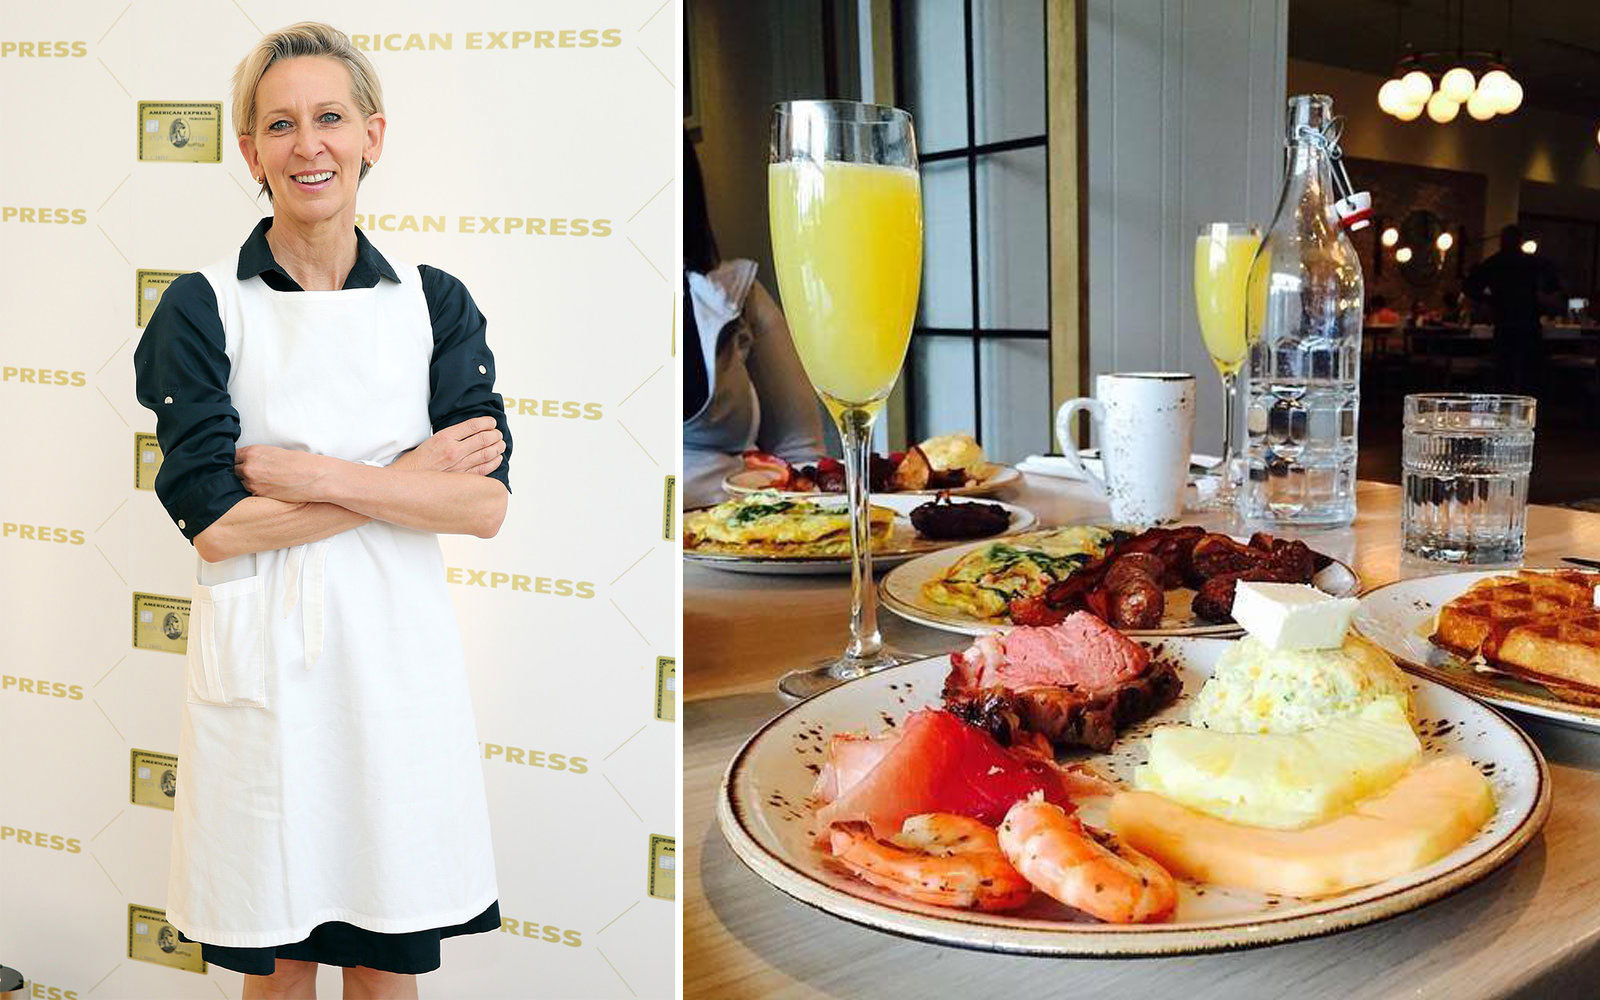 NEW YORK, NY - JUNE 11:  Chef Gabrielle Hamilton attends the American Express celebration of The Gold Card at Milk Studios on June 11, 2015 in New York City.  (Photo by Neilson Barnard/Getty Images for American Express)